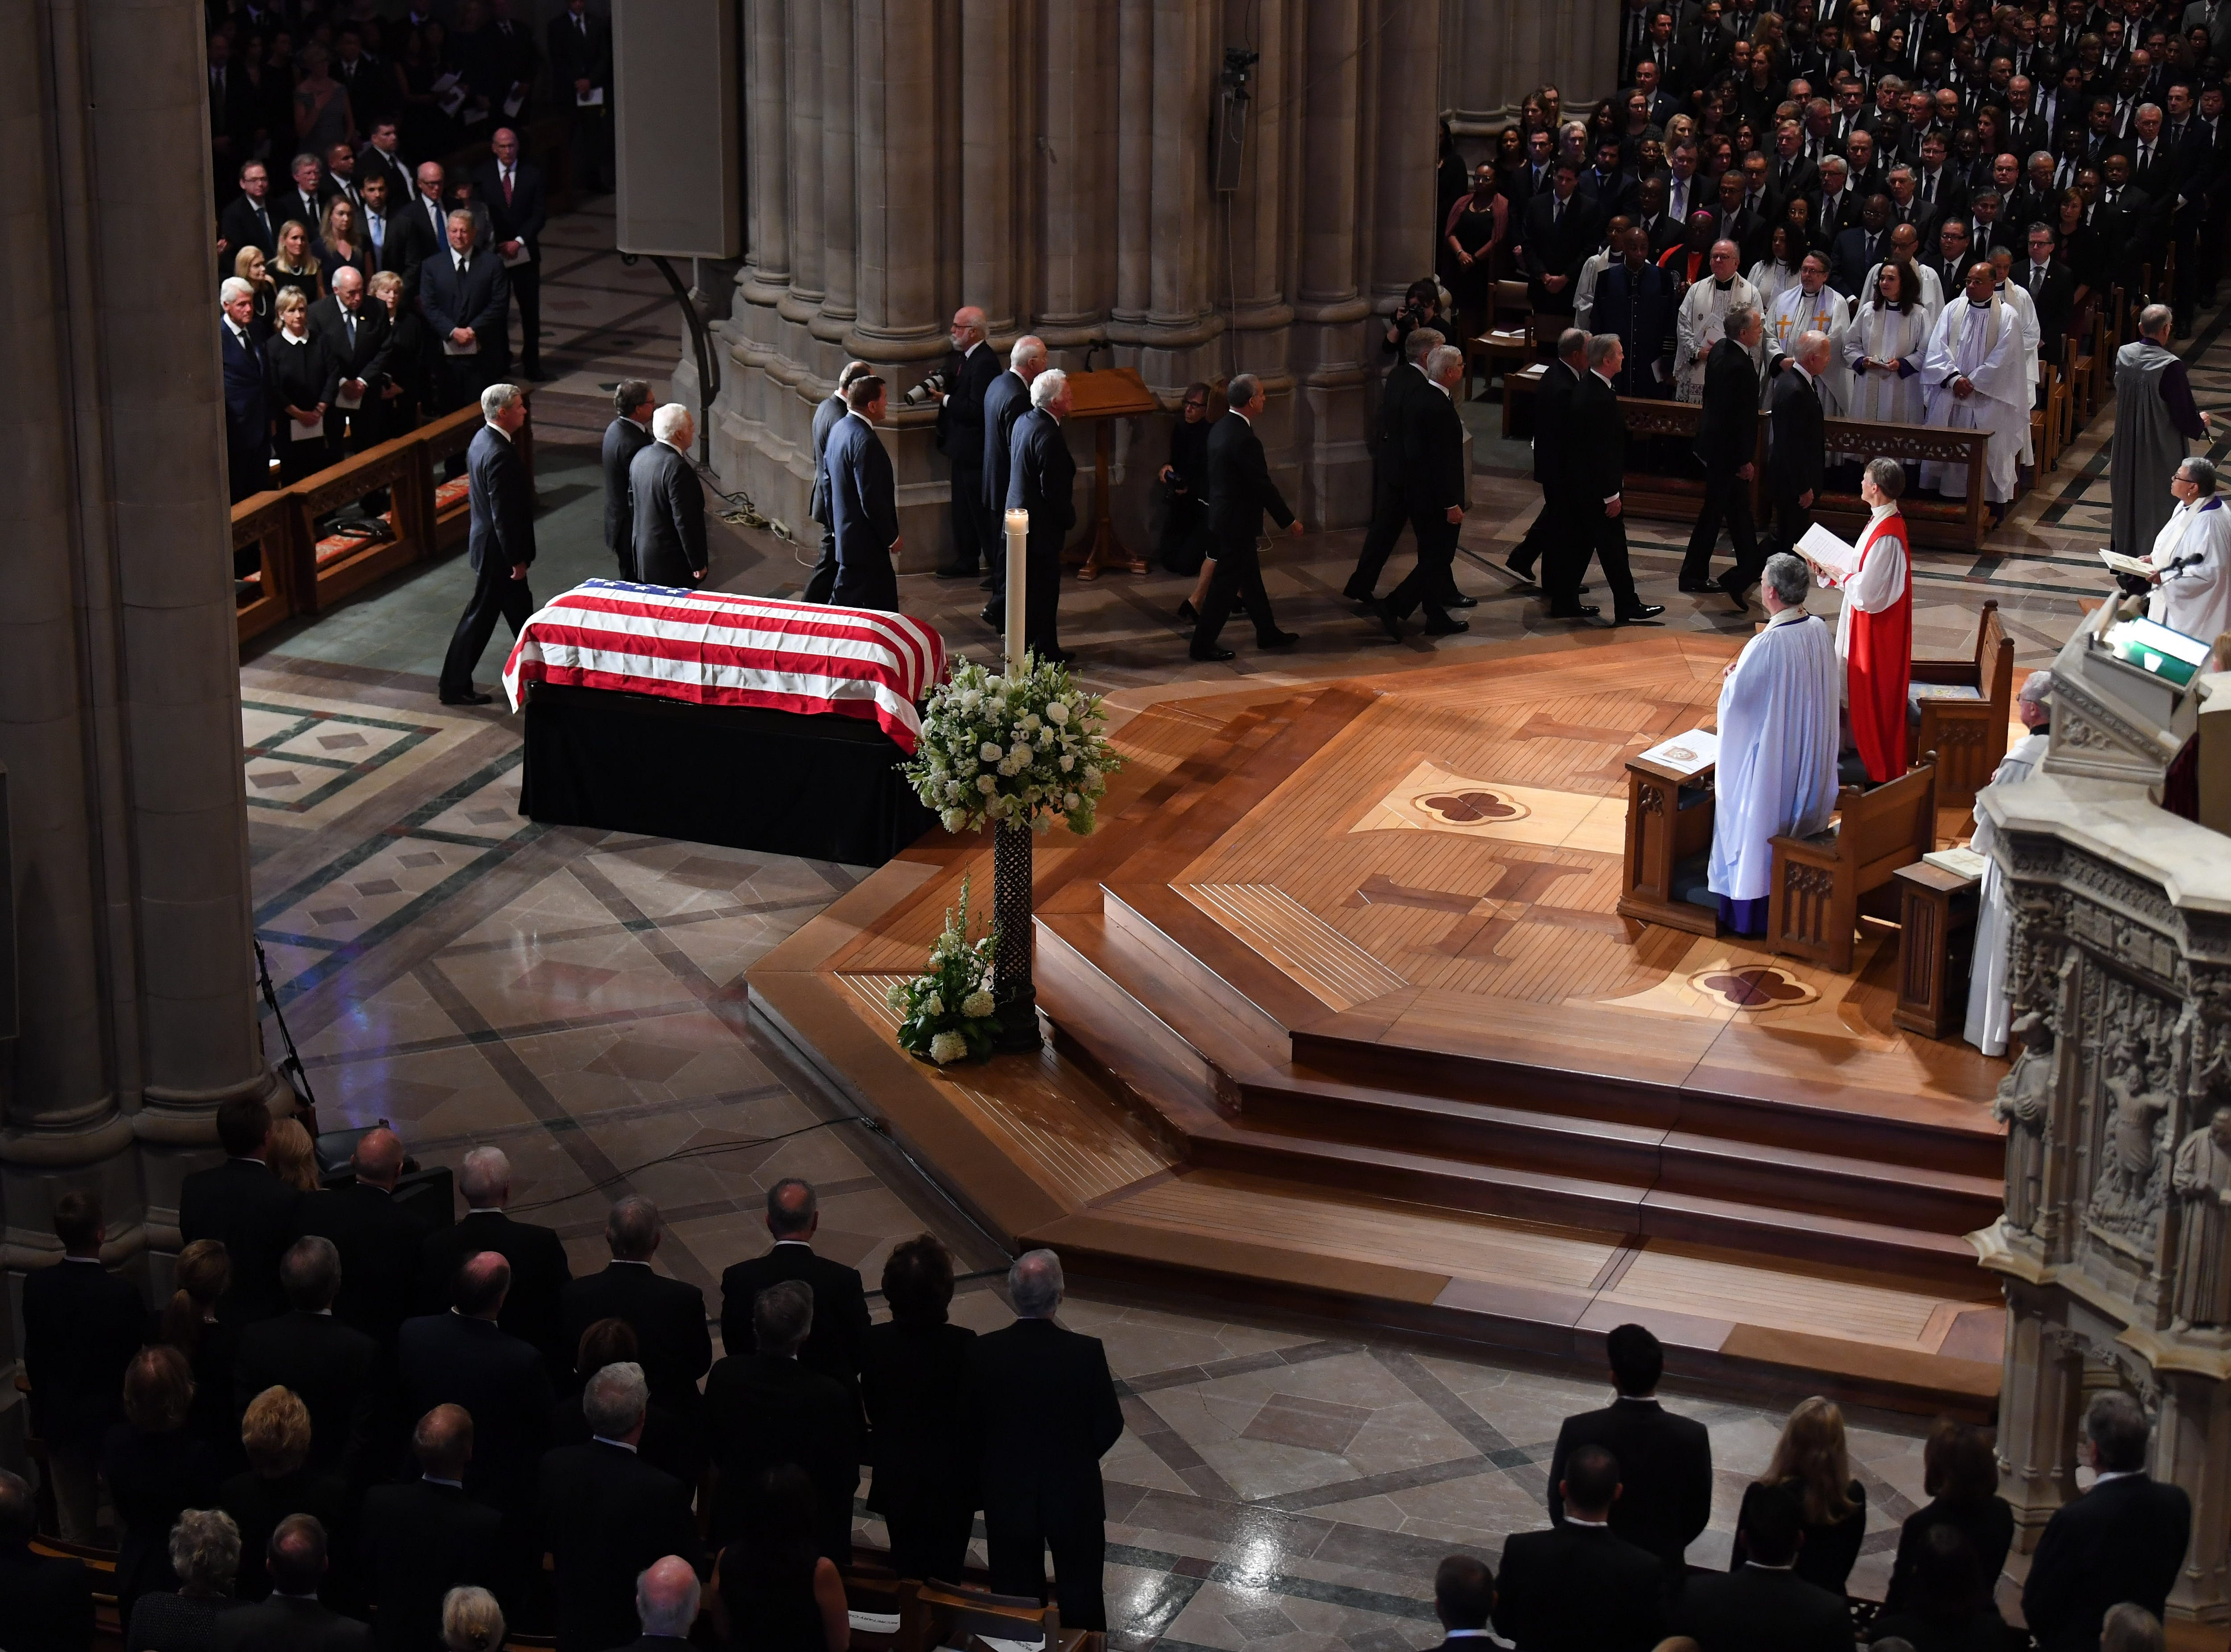 Mourners gather for the memorial service for John McCain at the National Cathedral in Washington, DC.